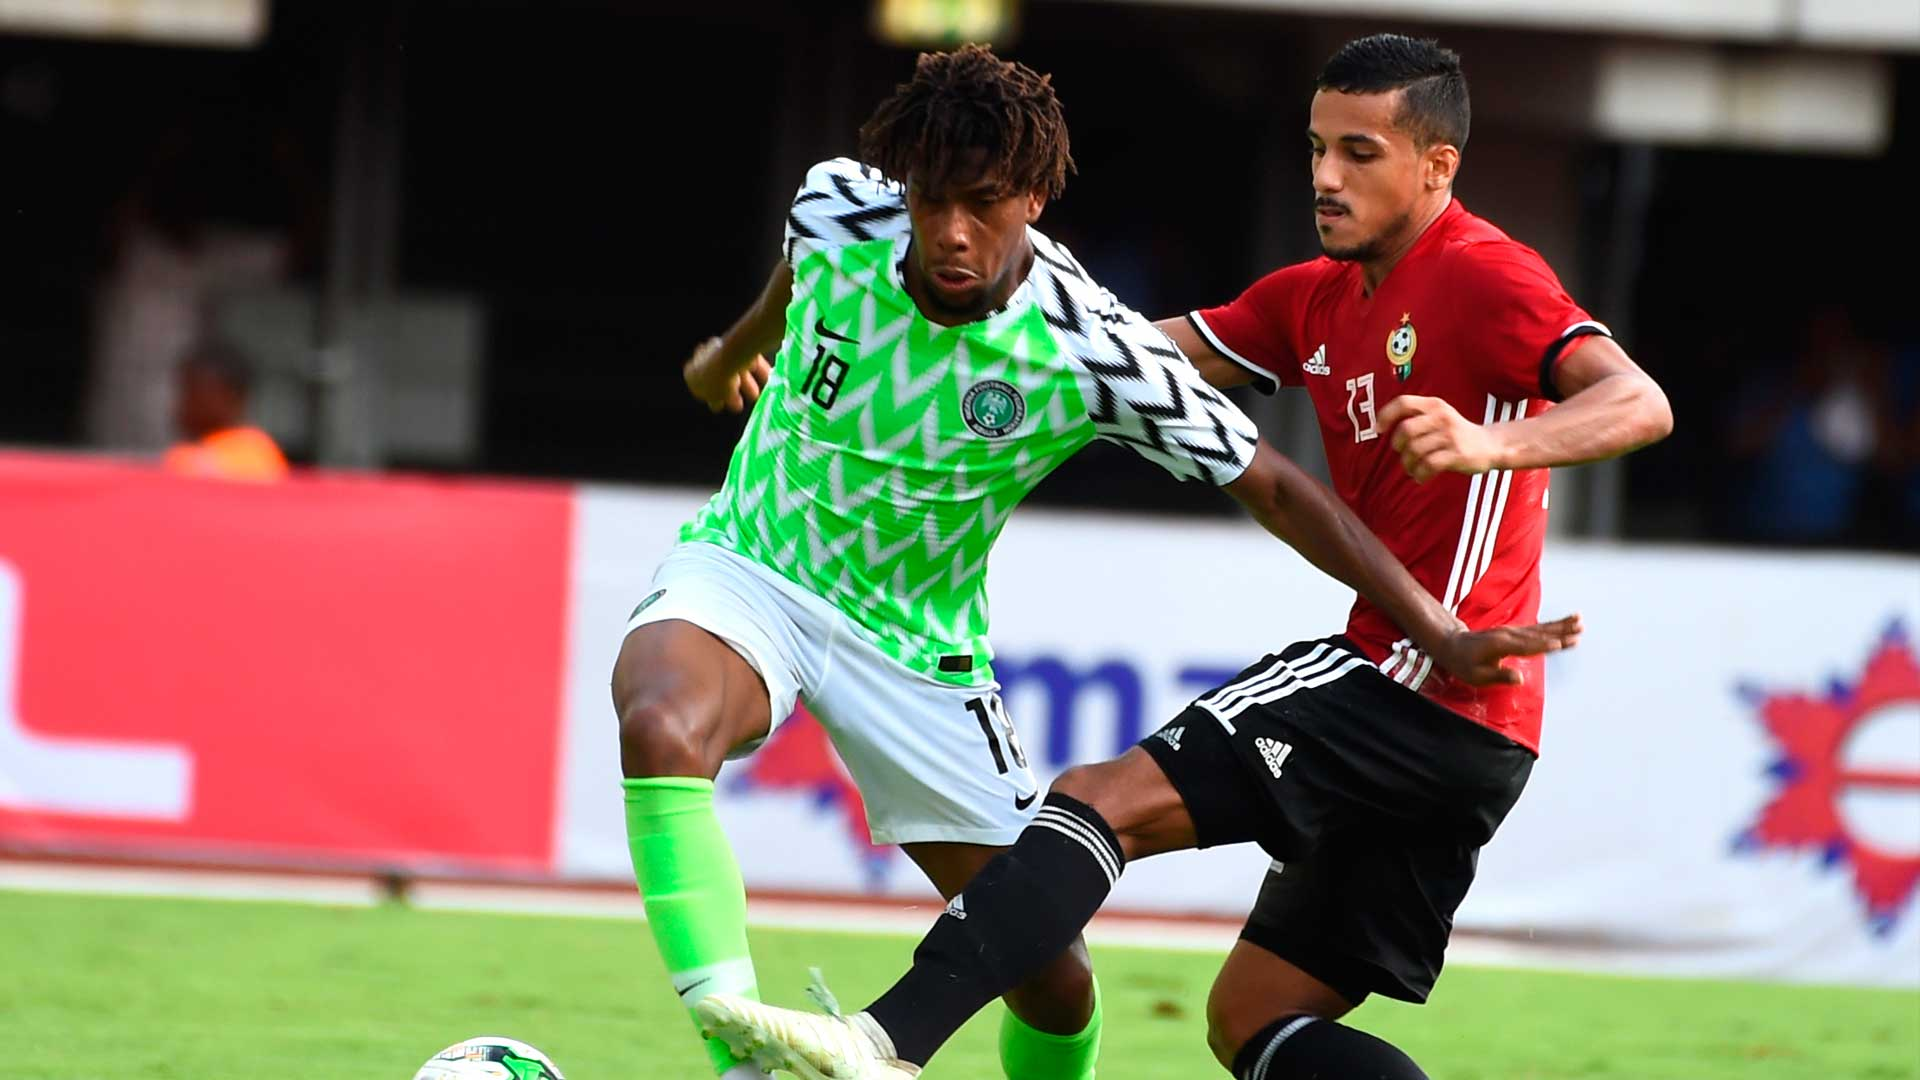 Africa Cup of Nations: How to watch Afcon 2019 matches